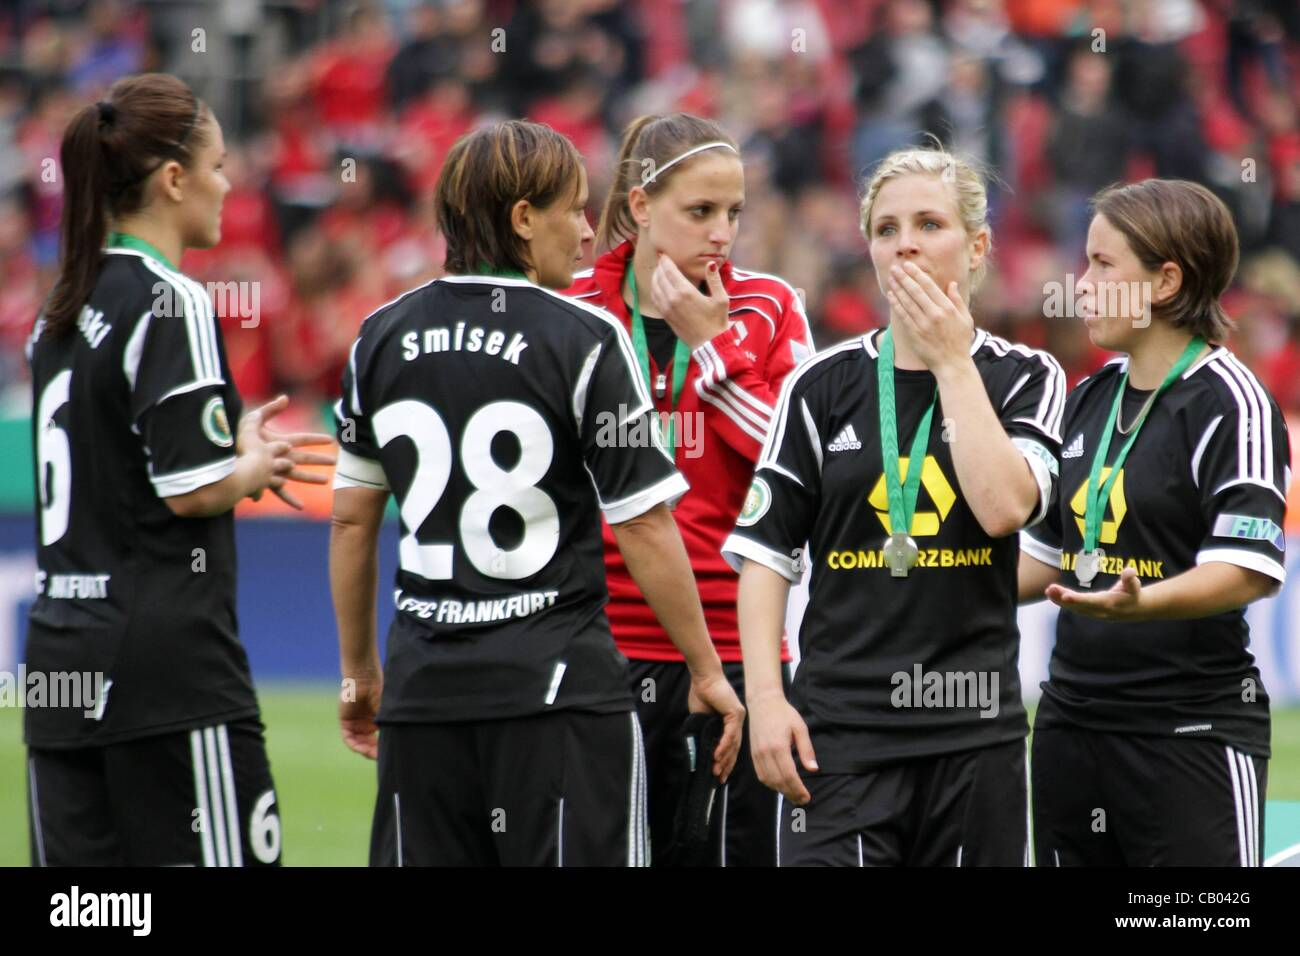 12.05.2012. Cologne, Germany. German womens Cup Final FFC Frankfurt vs FC Bayern Munich  Big disappointment for - Stock Image